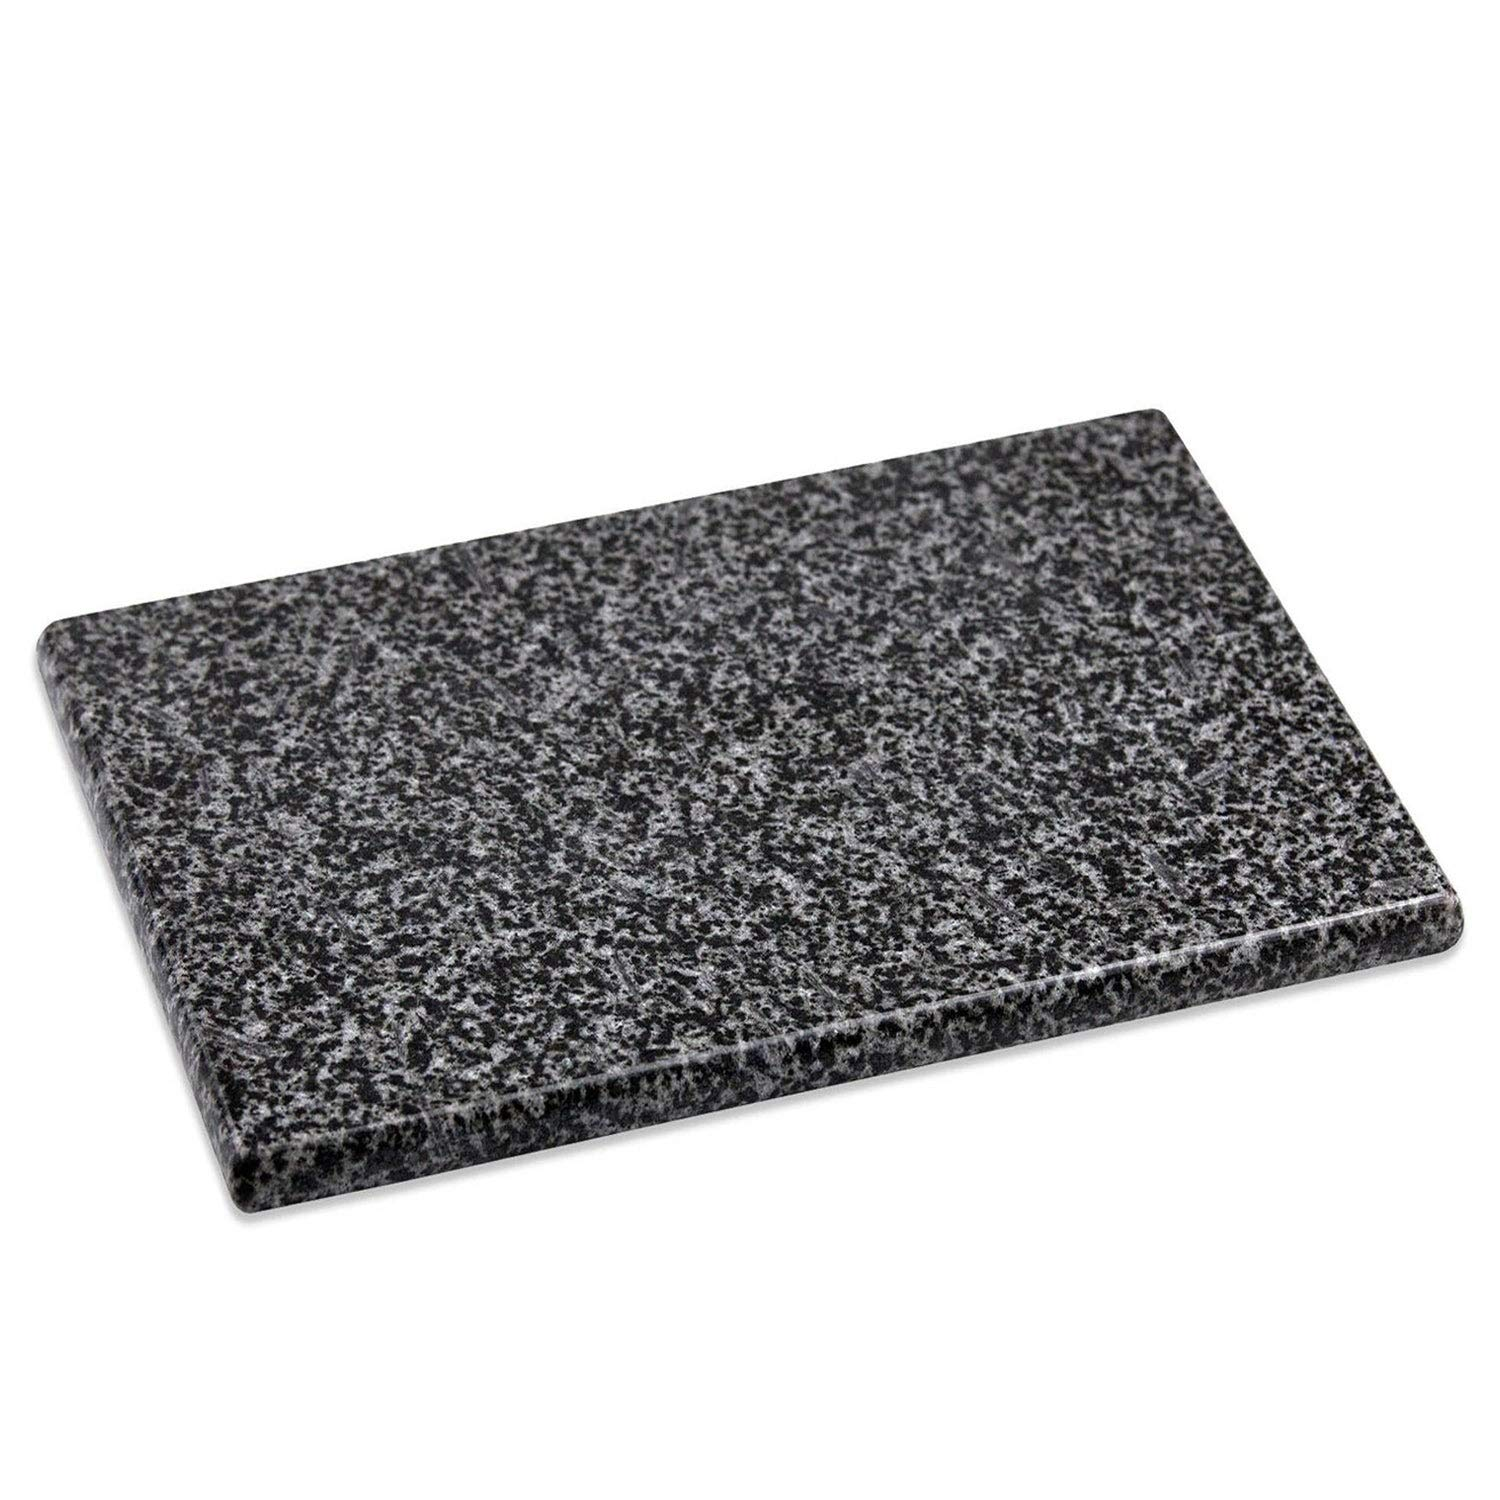 Granite Cutting Board Black Rectangle Stone